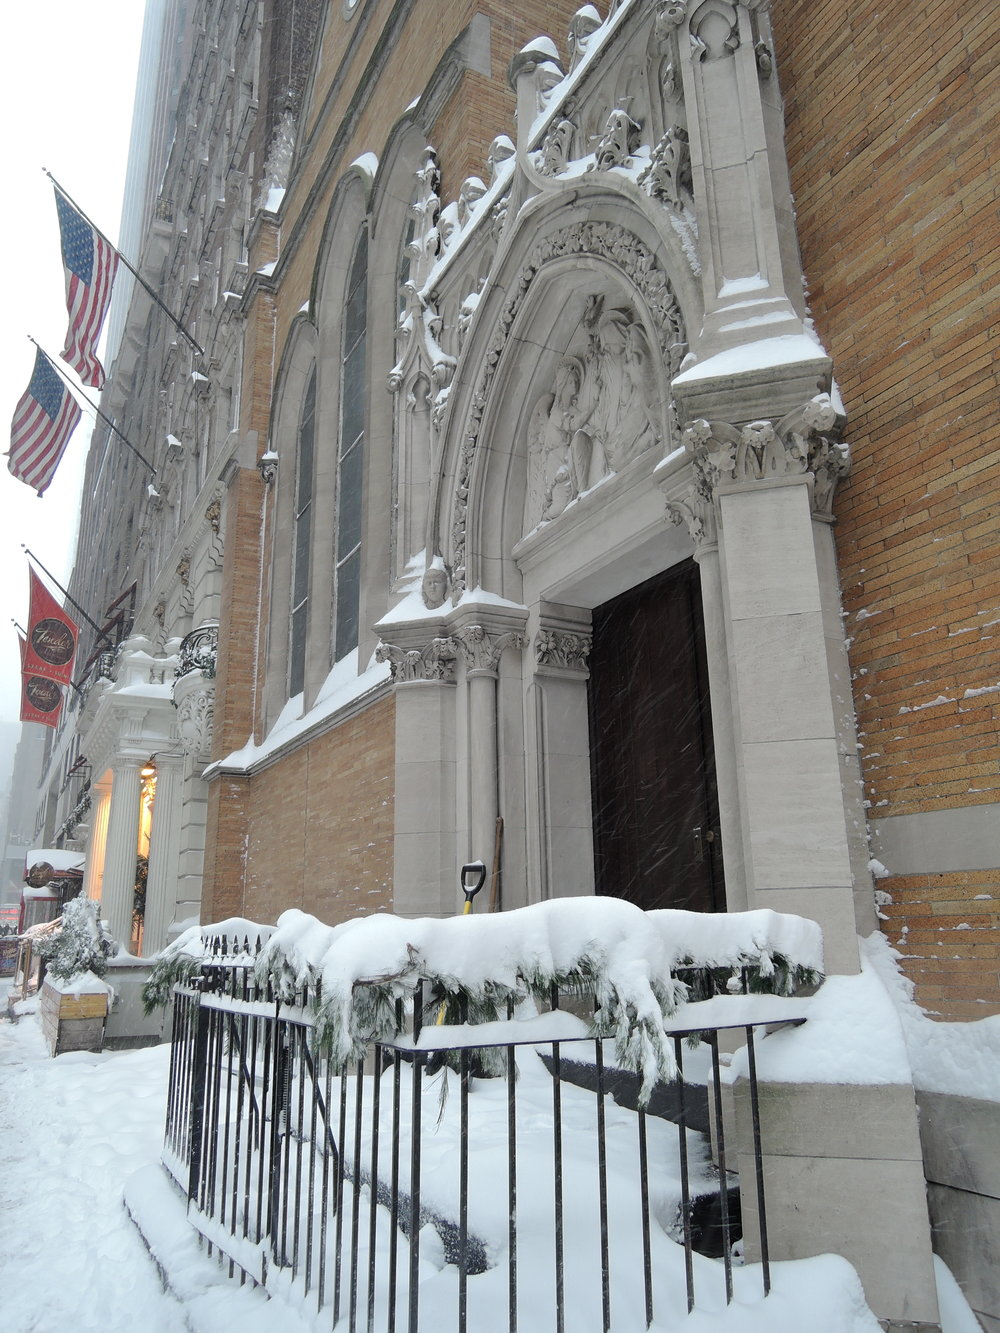 It snowed in the city on Thursday, January 4. Photo by Sr. Monica Clare, C.S.J.B.